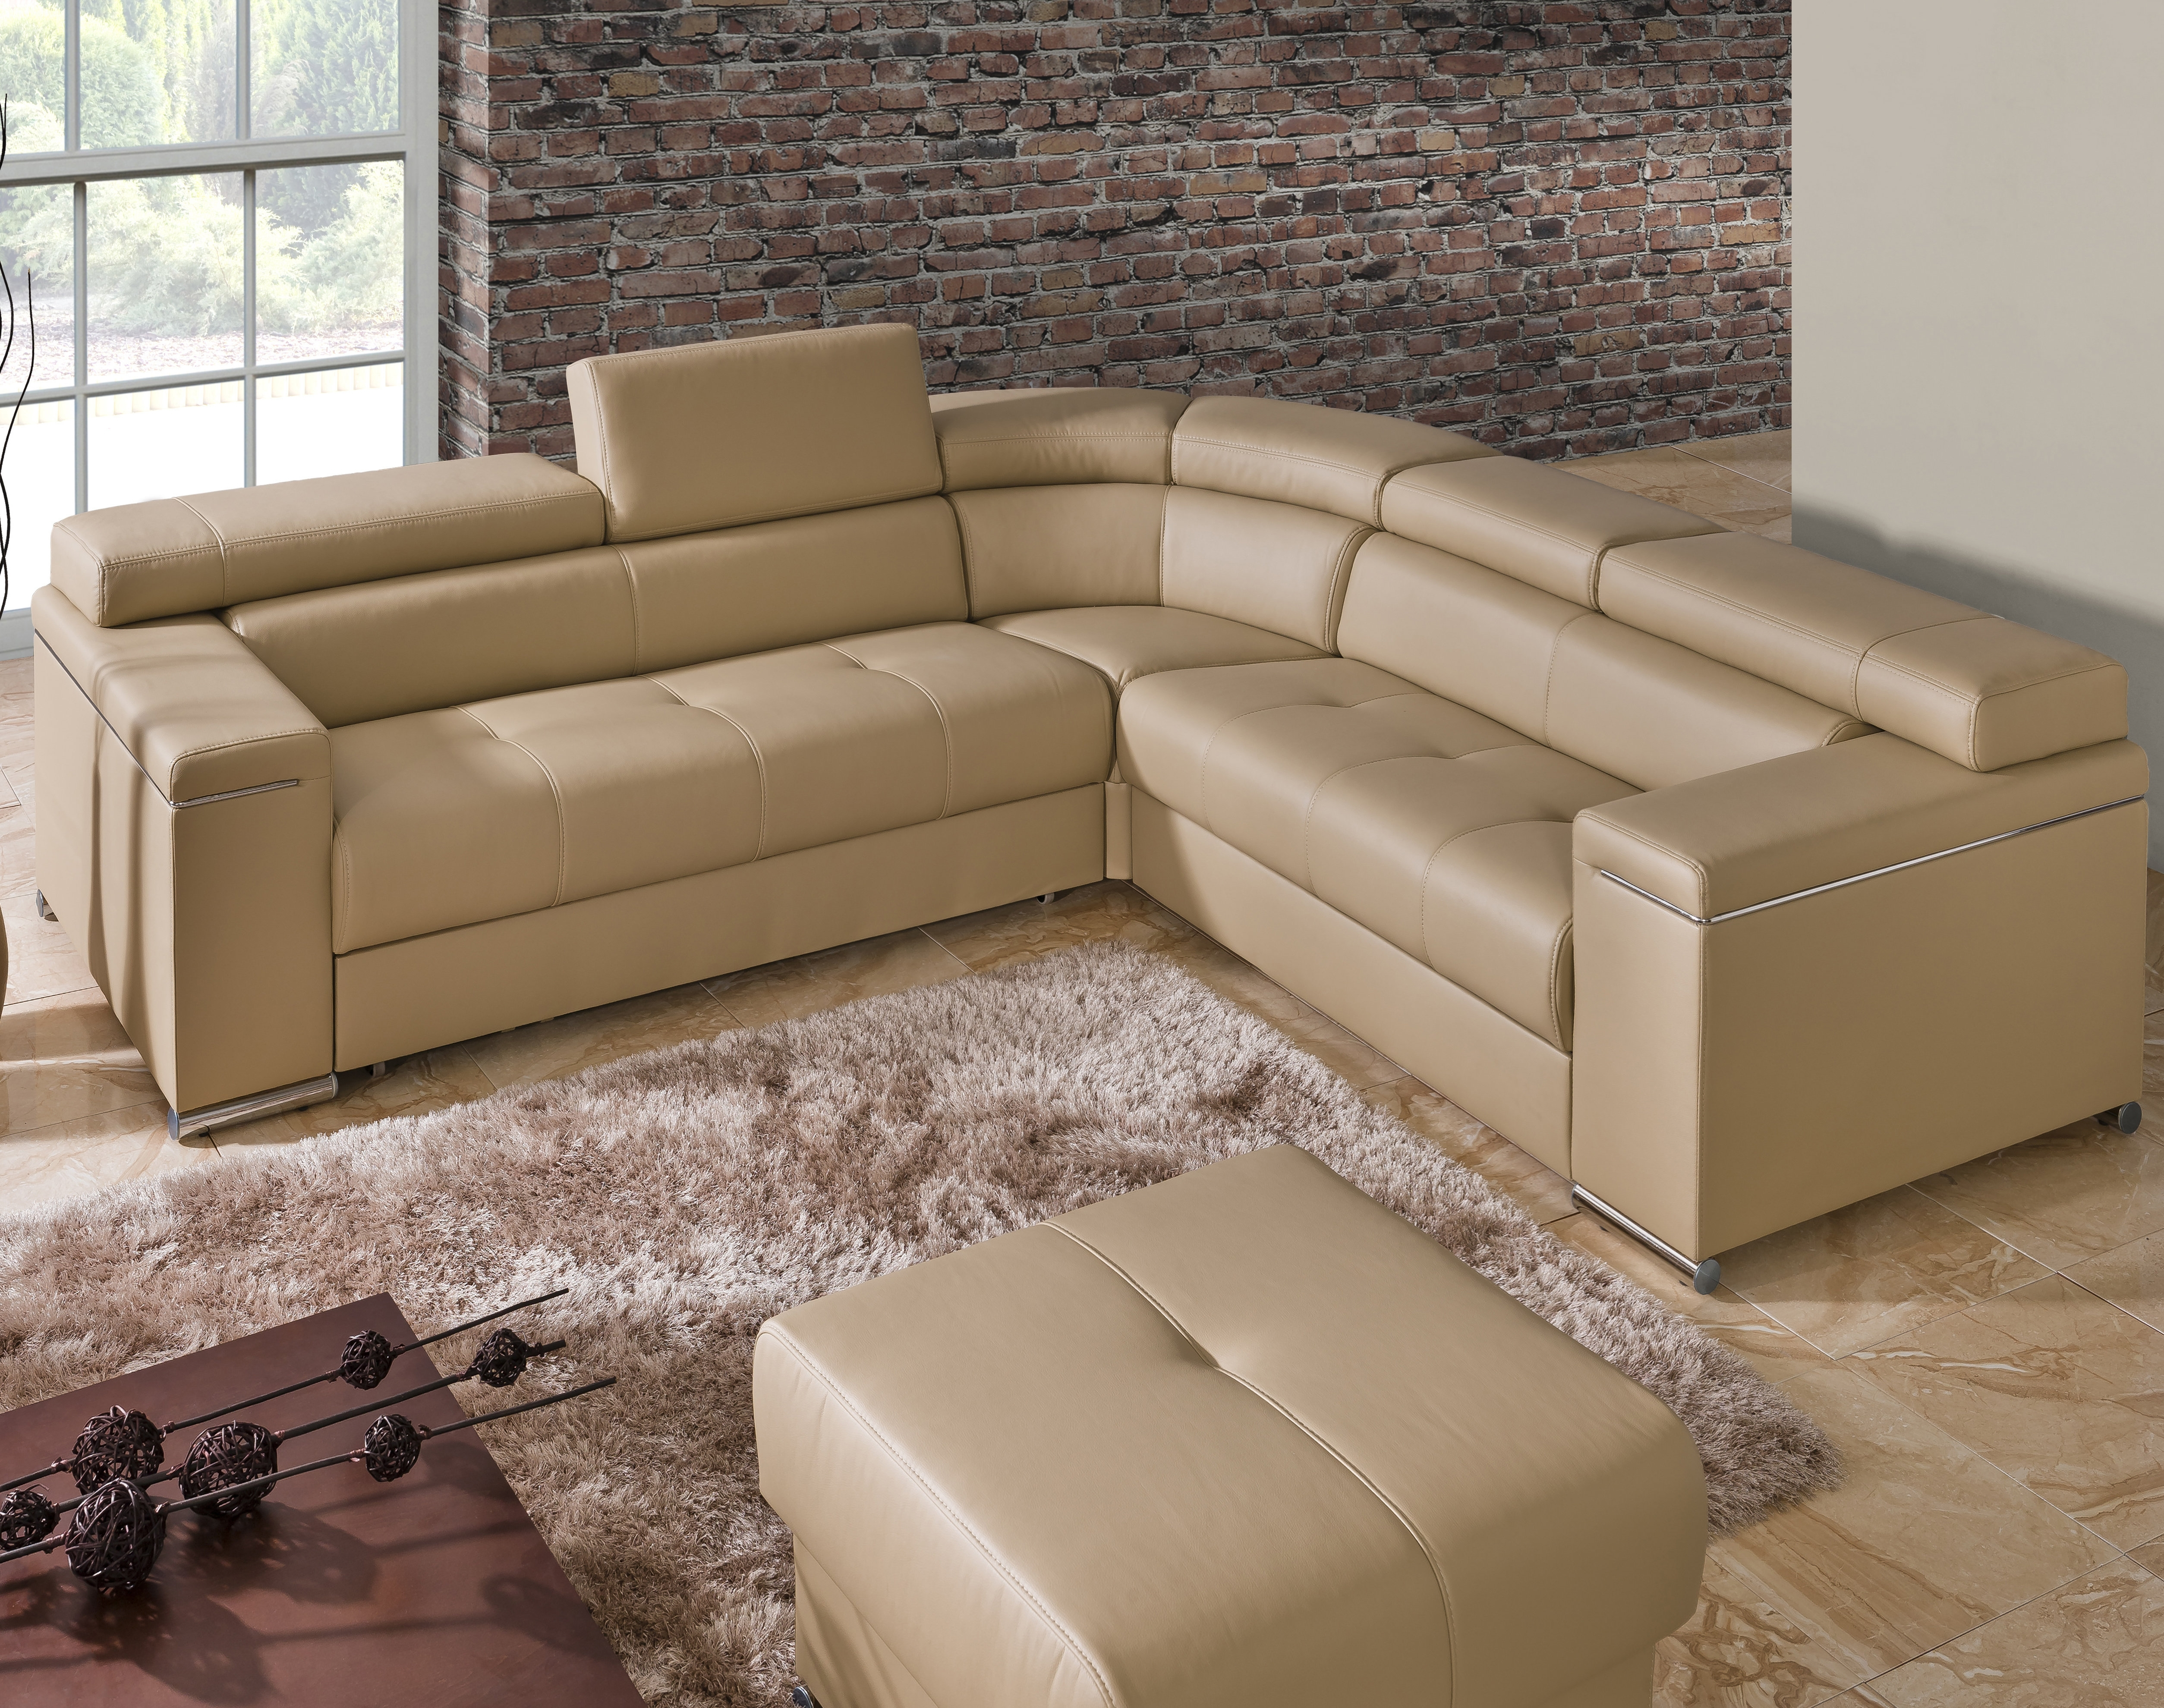 The Collection German Furniture Sleeper Sectional | Wayfair within Blaine 4 Piece Sectionals (Image 30 of 30)